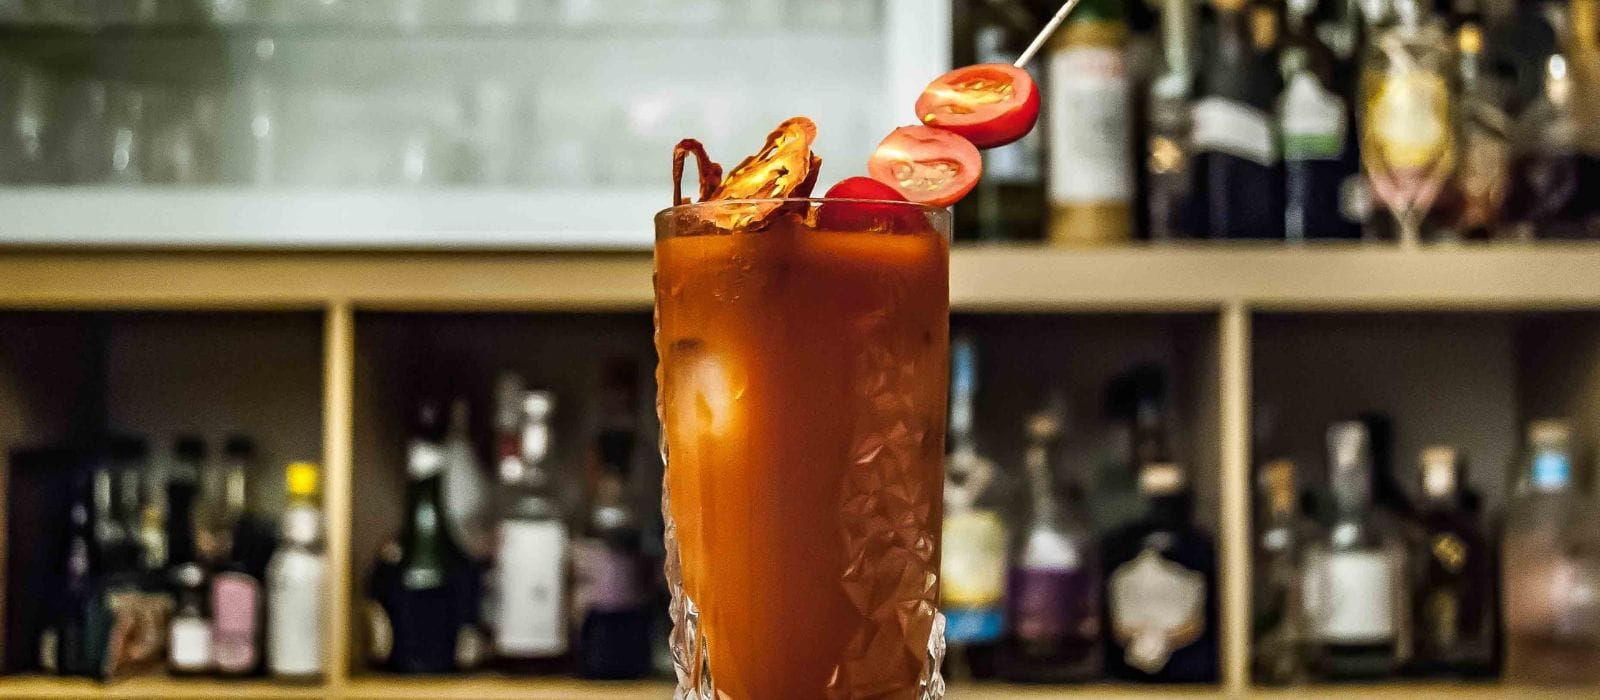 What is a Caesar Vs a Bloody Mary| What is the Difference Between a Caesar and a Bloody Mary| Is a Bloody Mary the Same as a Caesar| Caesar or Bloody Mary| #caesar #bloodymary #cocktails #drinks